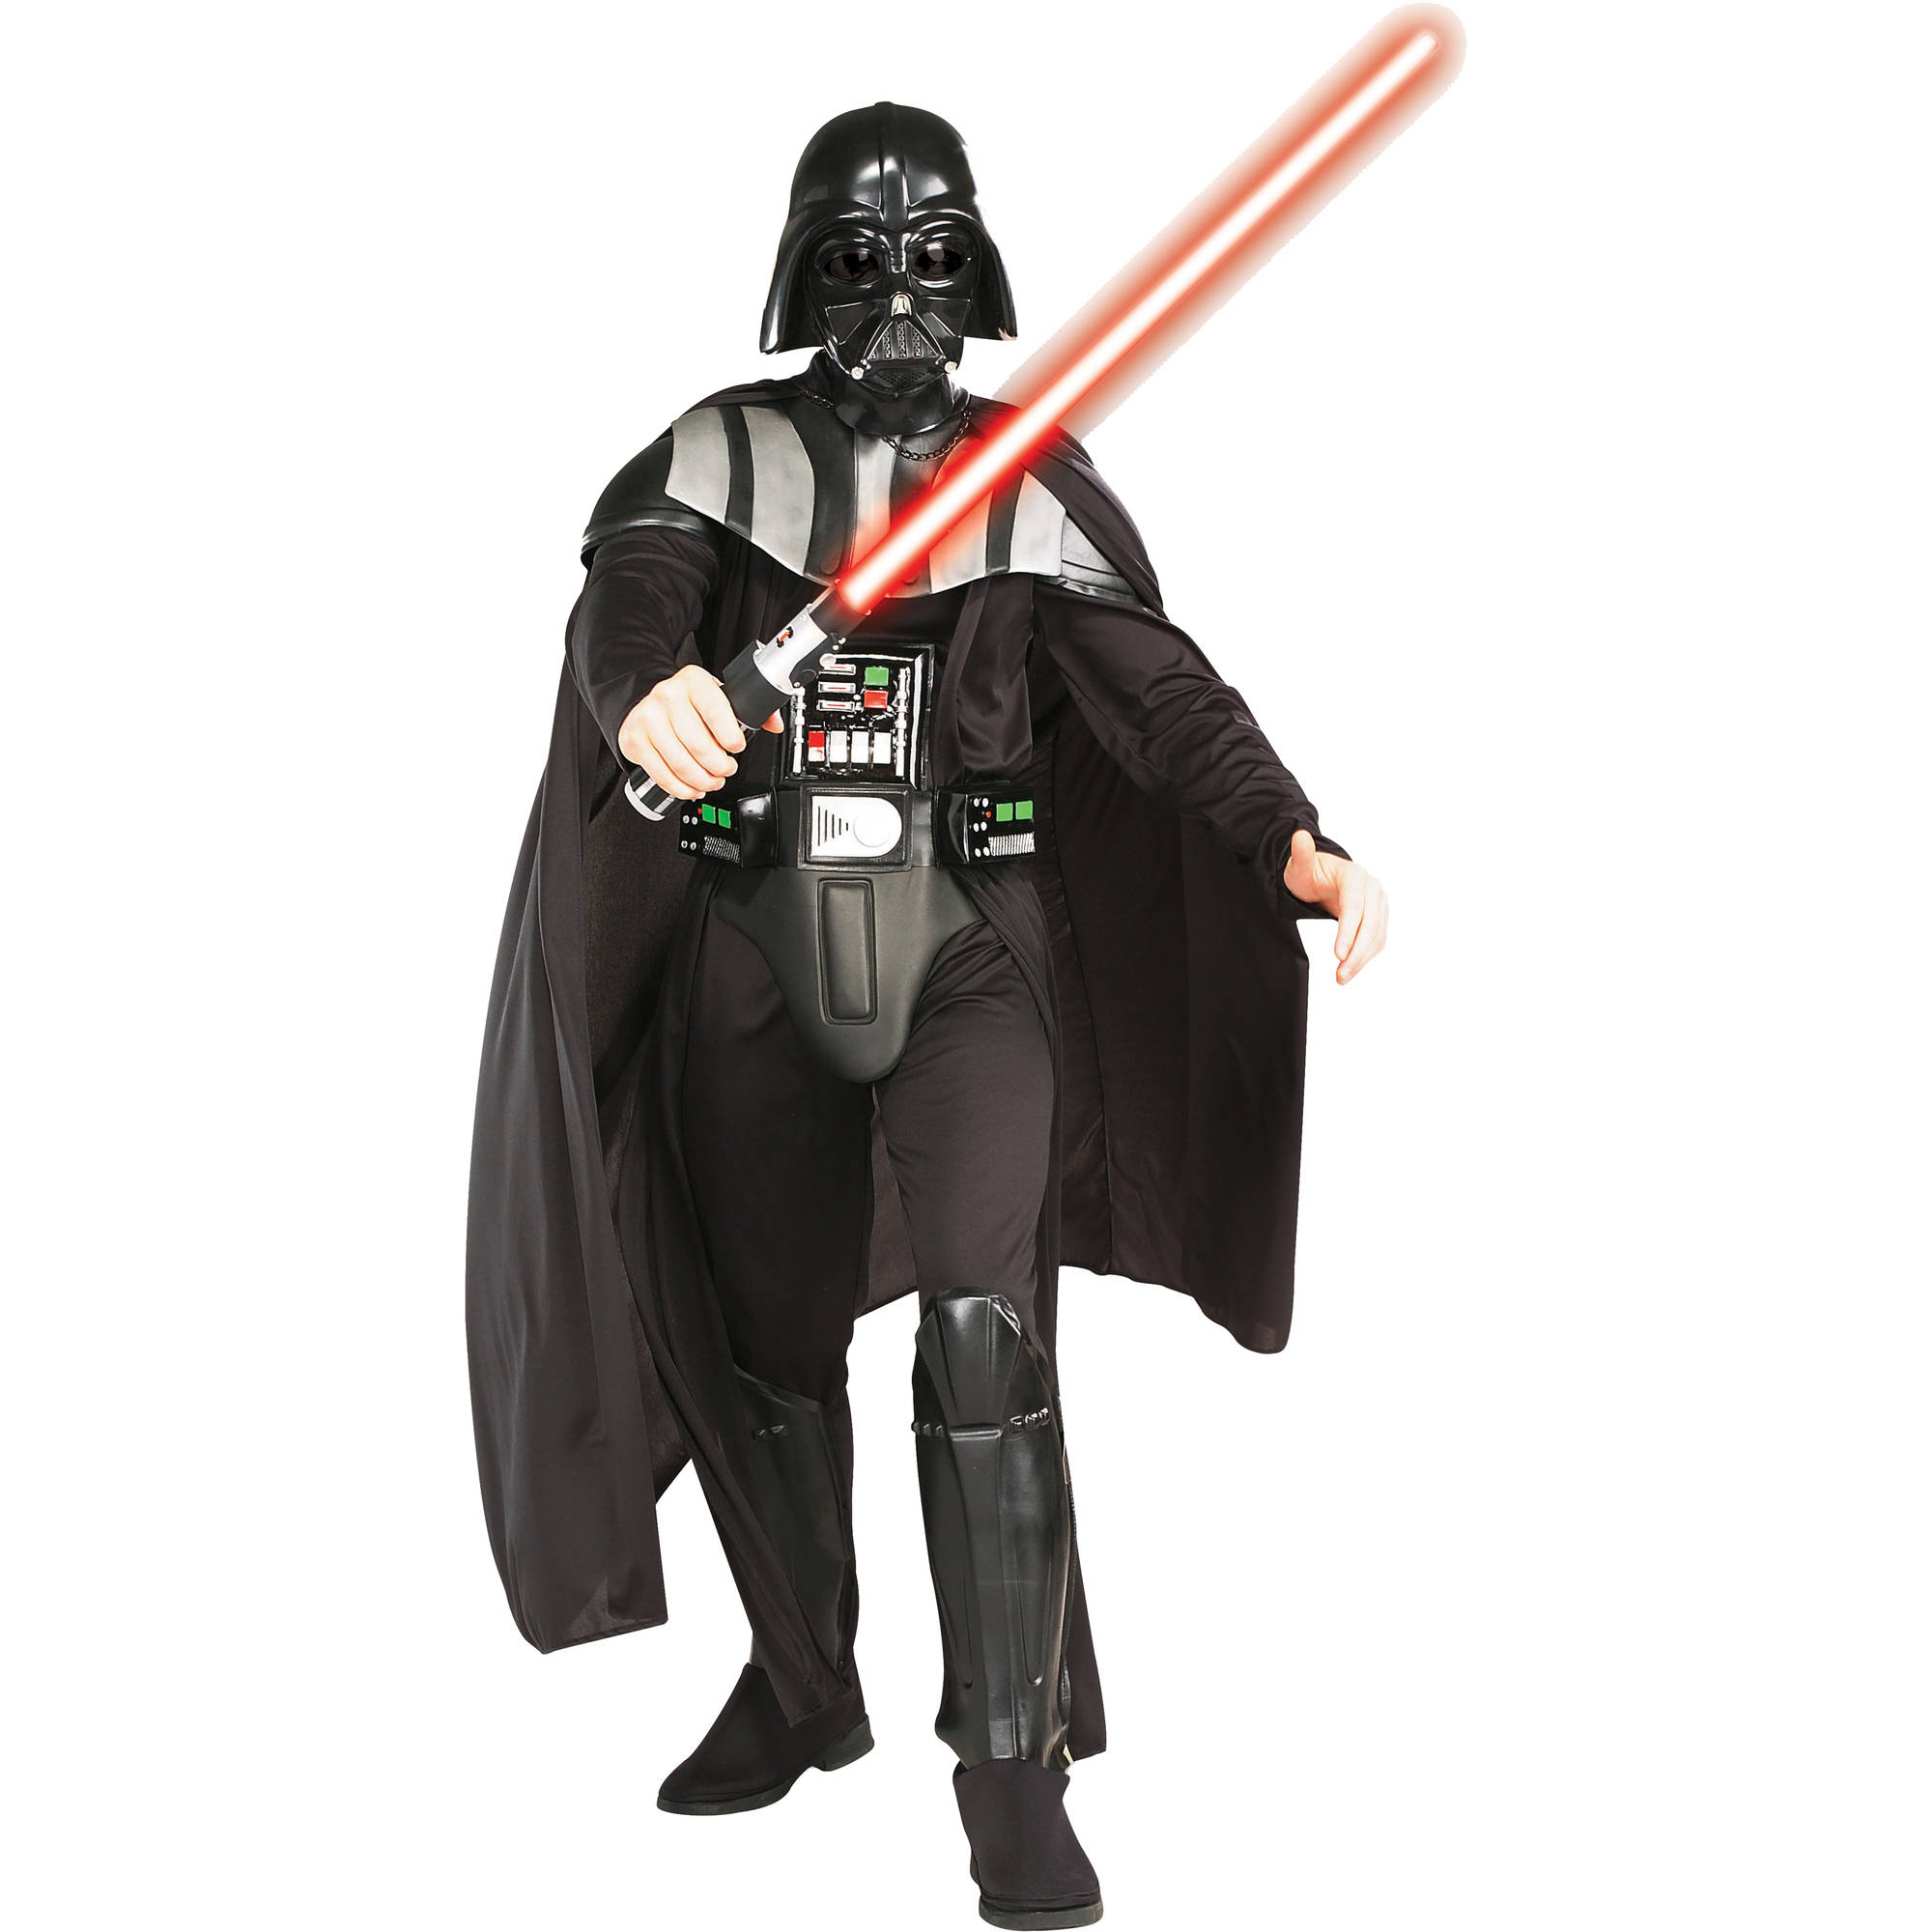 Darth Vader Deluxe Adult Halloween Costume - One Size Up to 44